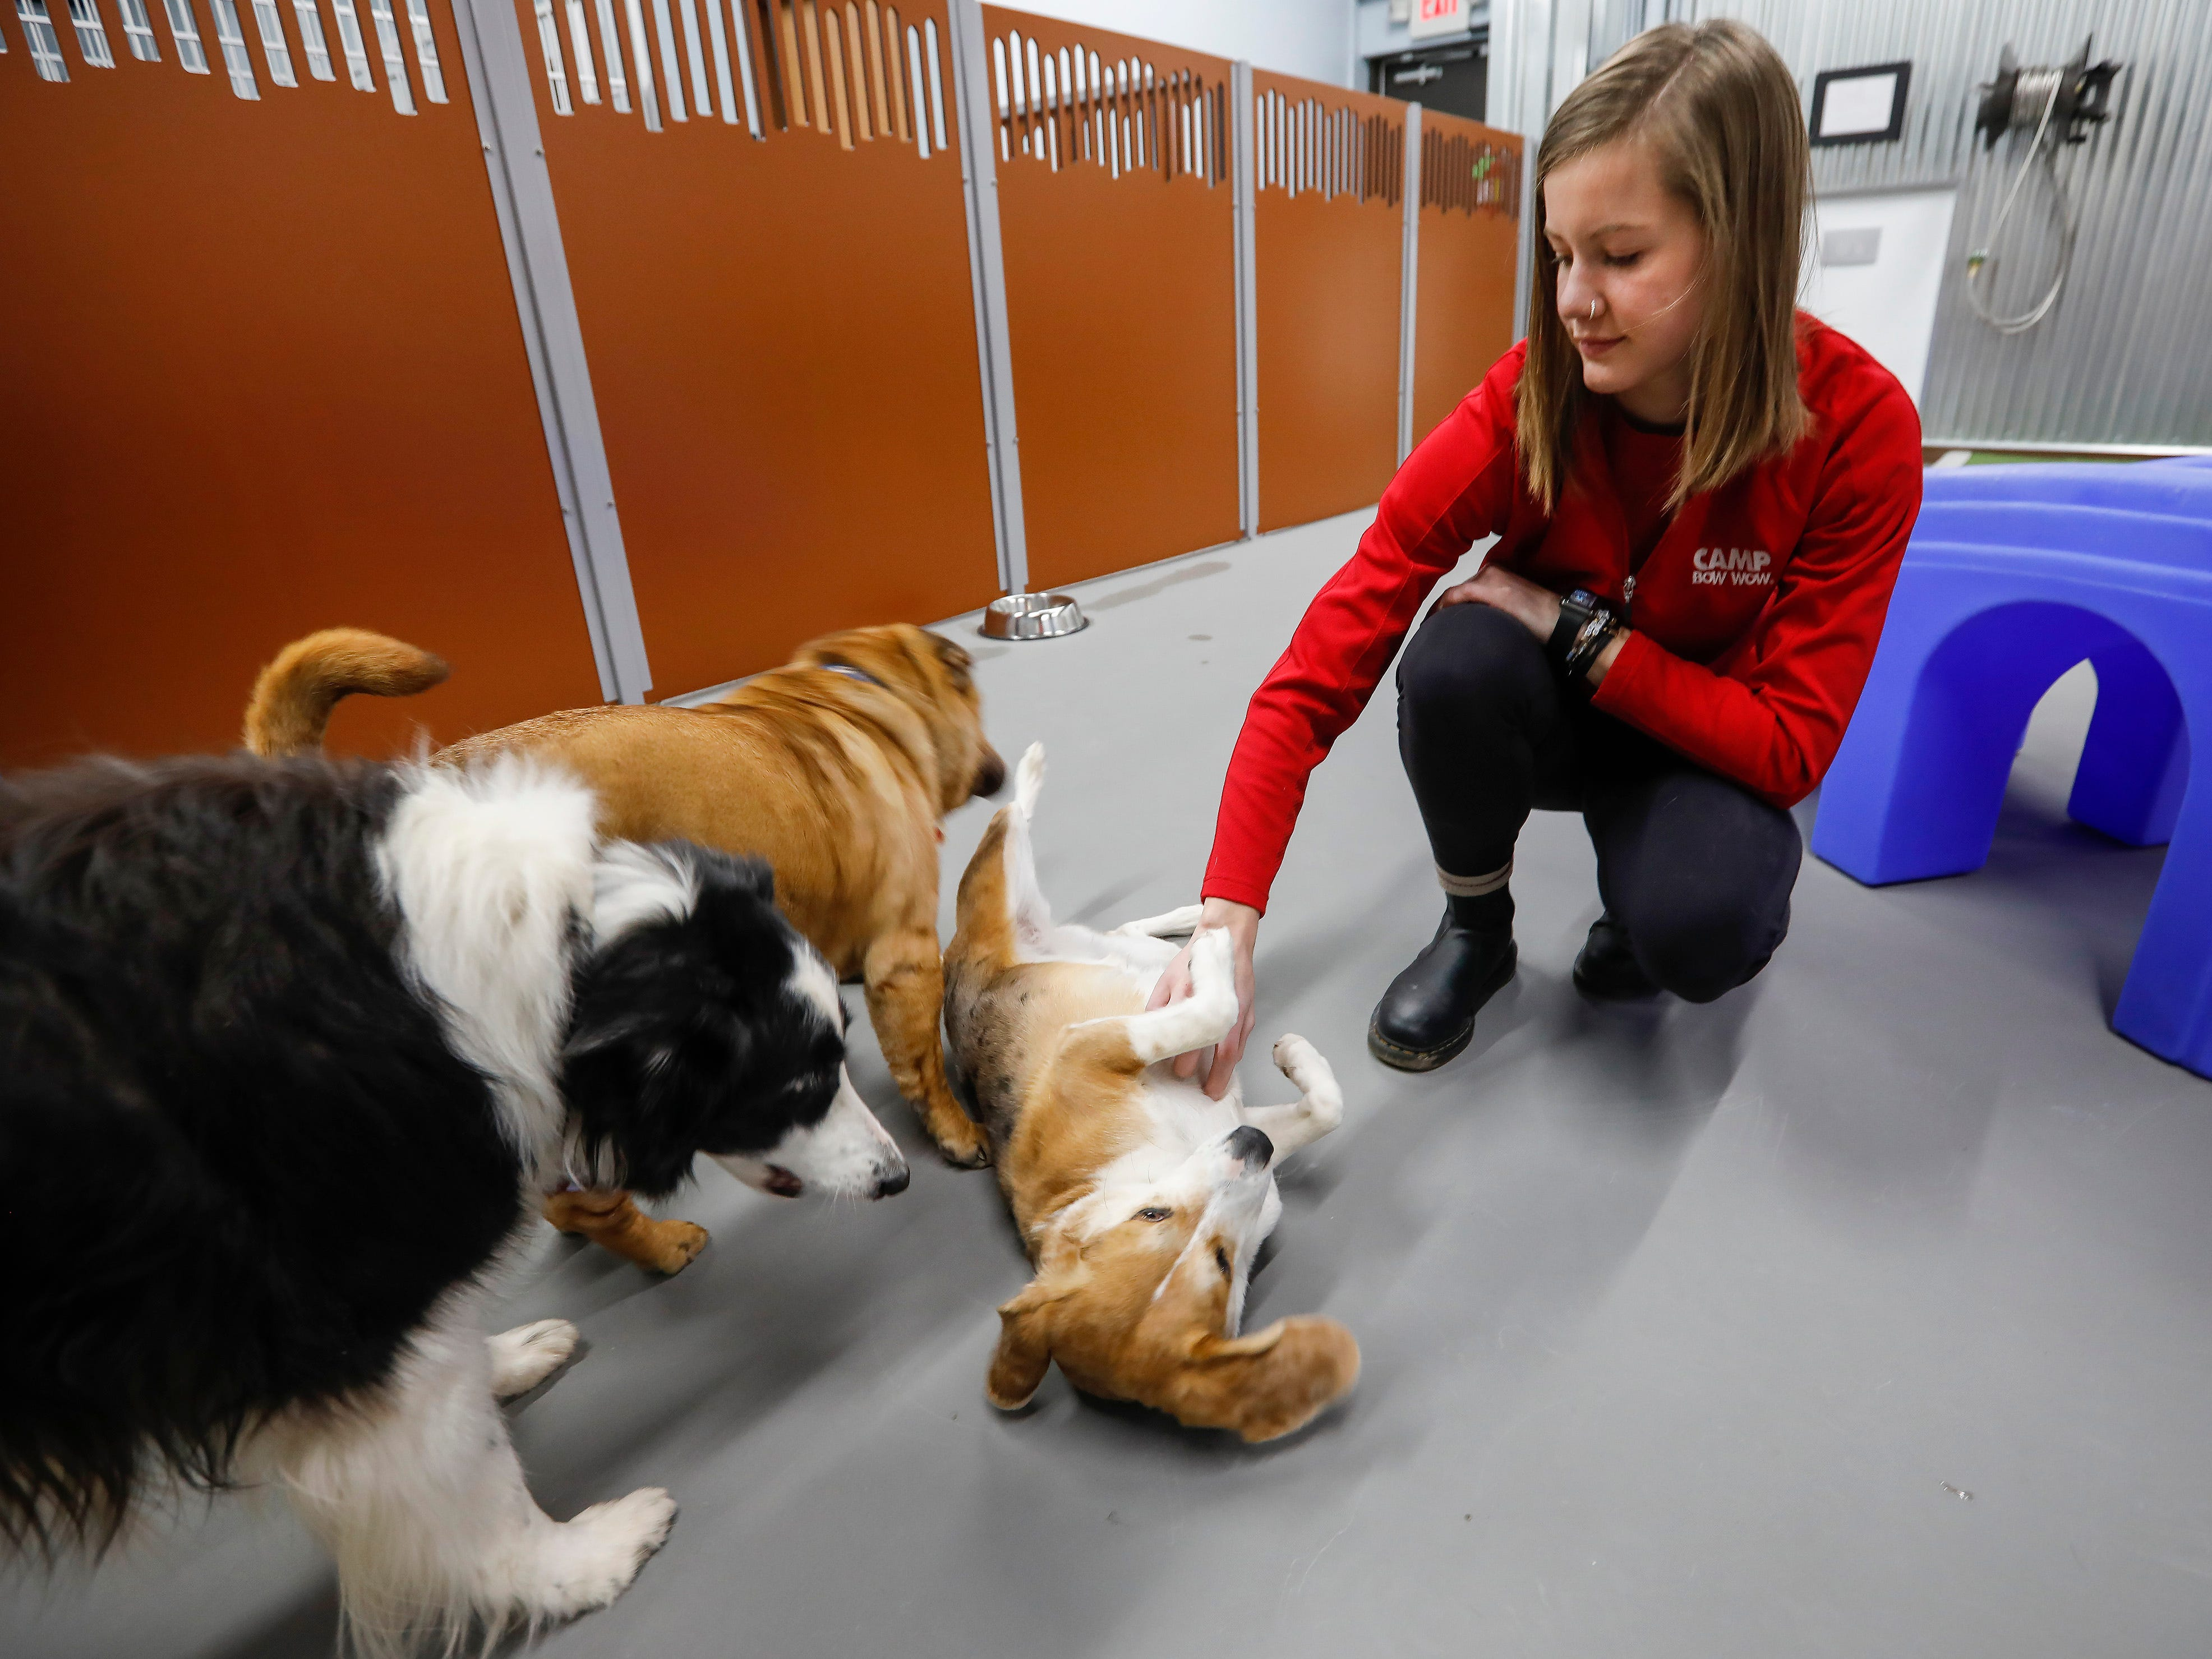 Lupine gets a belly rub from Assistant Manager Valerie Rooney at the new Camp Bow Wow located at 2814 S. Fremont Ave., Suite 104.